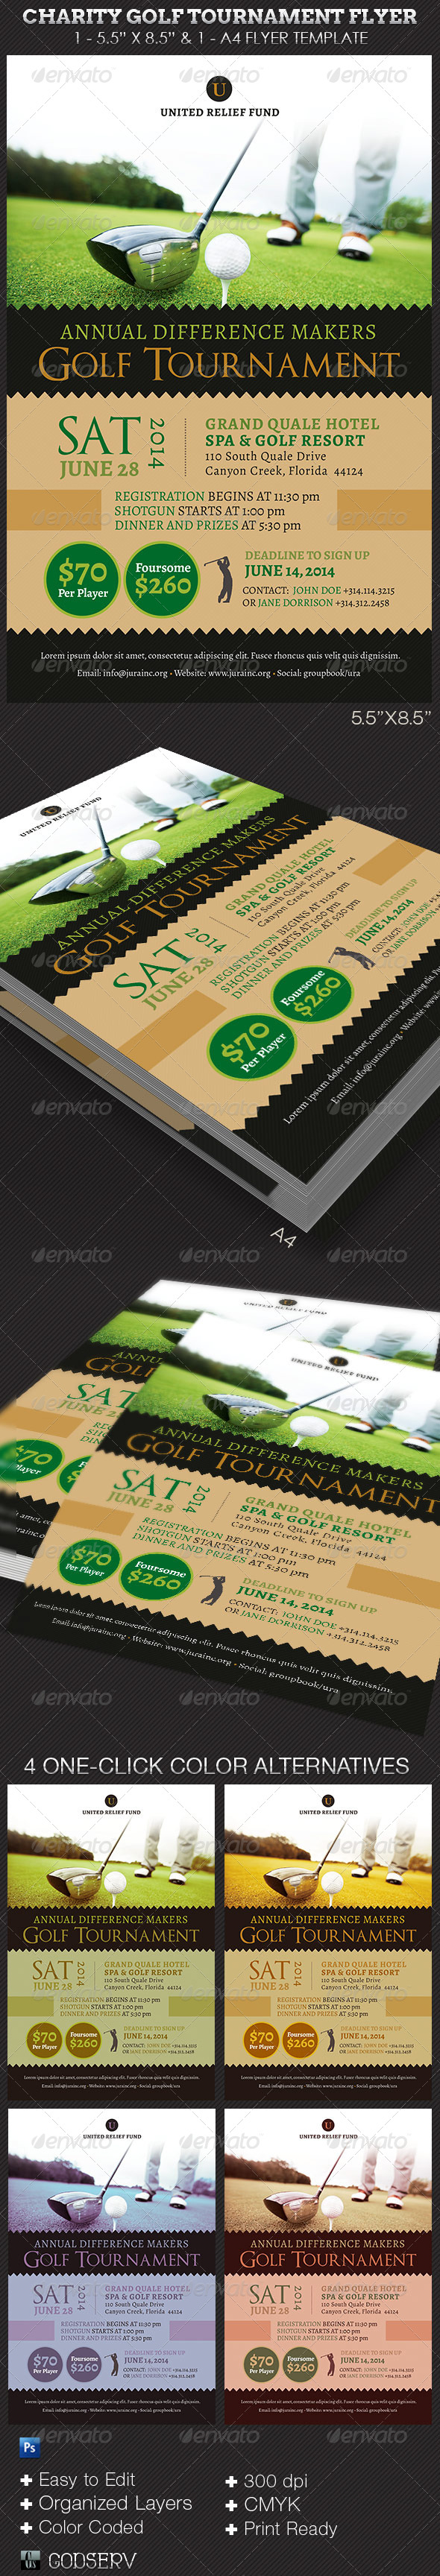 Charity Golf Tournament Flyer Template - Sports Events